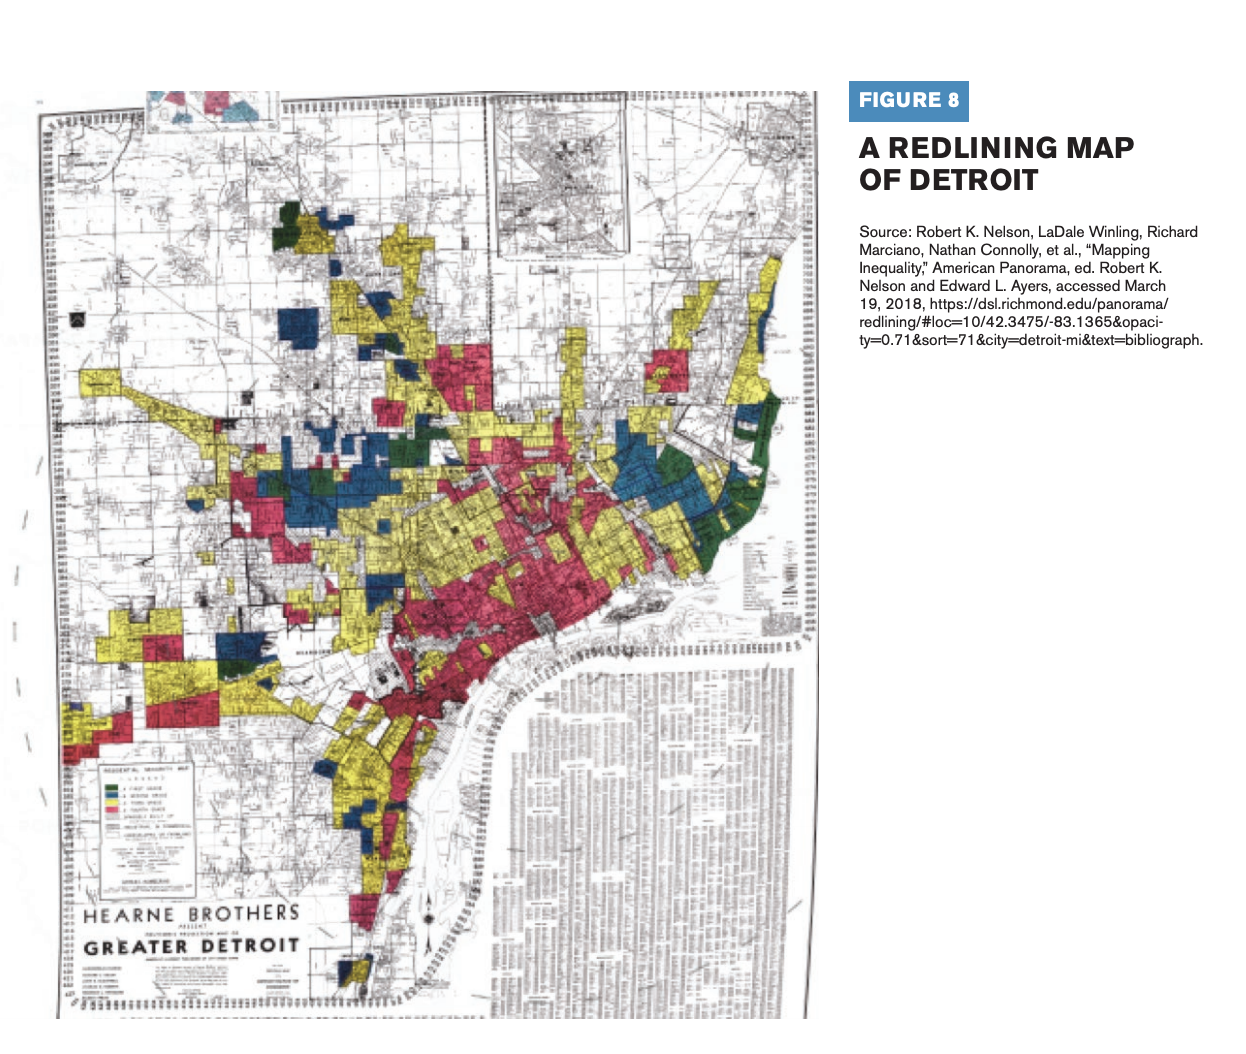 This image is a redlining map of Detroit.